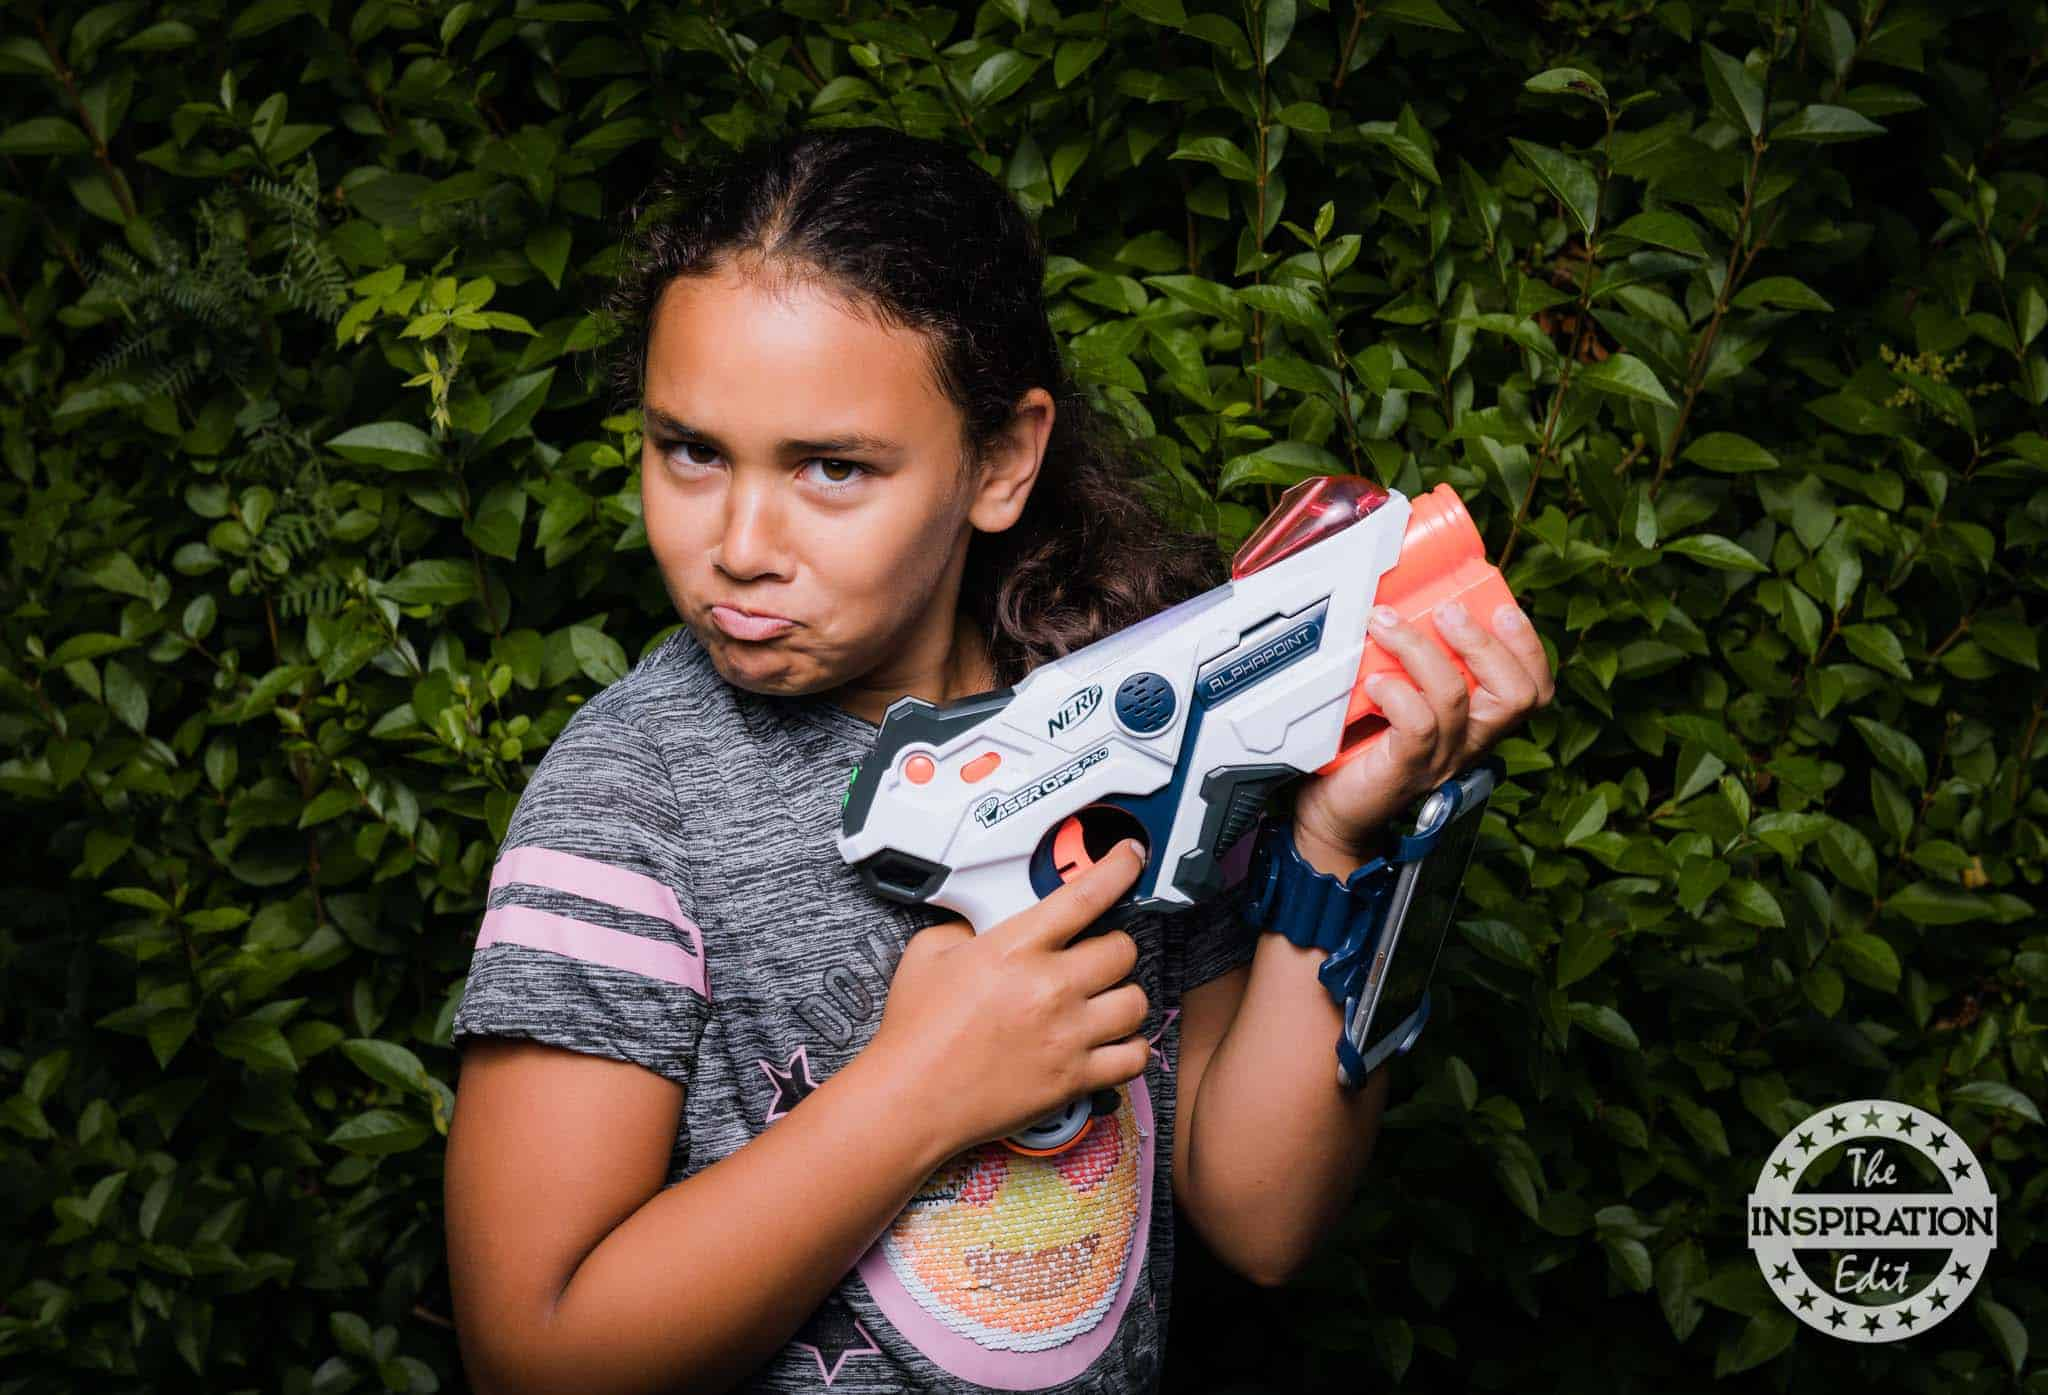 Nerf Laser Ops Pro AlphapointNerf Laser Ops Pro Alphapoint - sad face